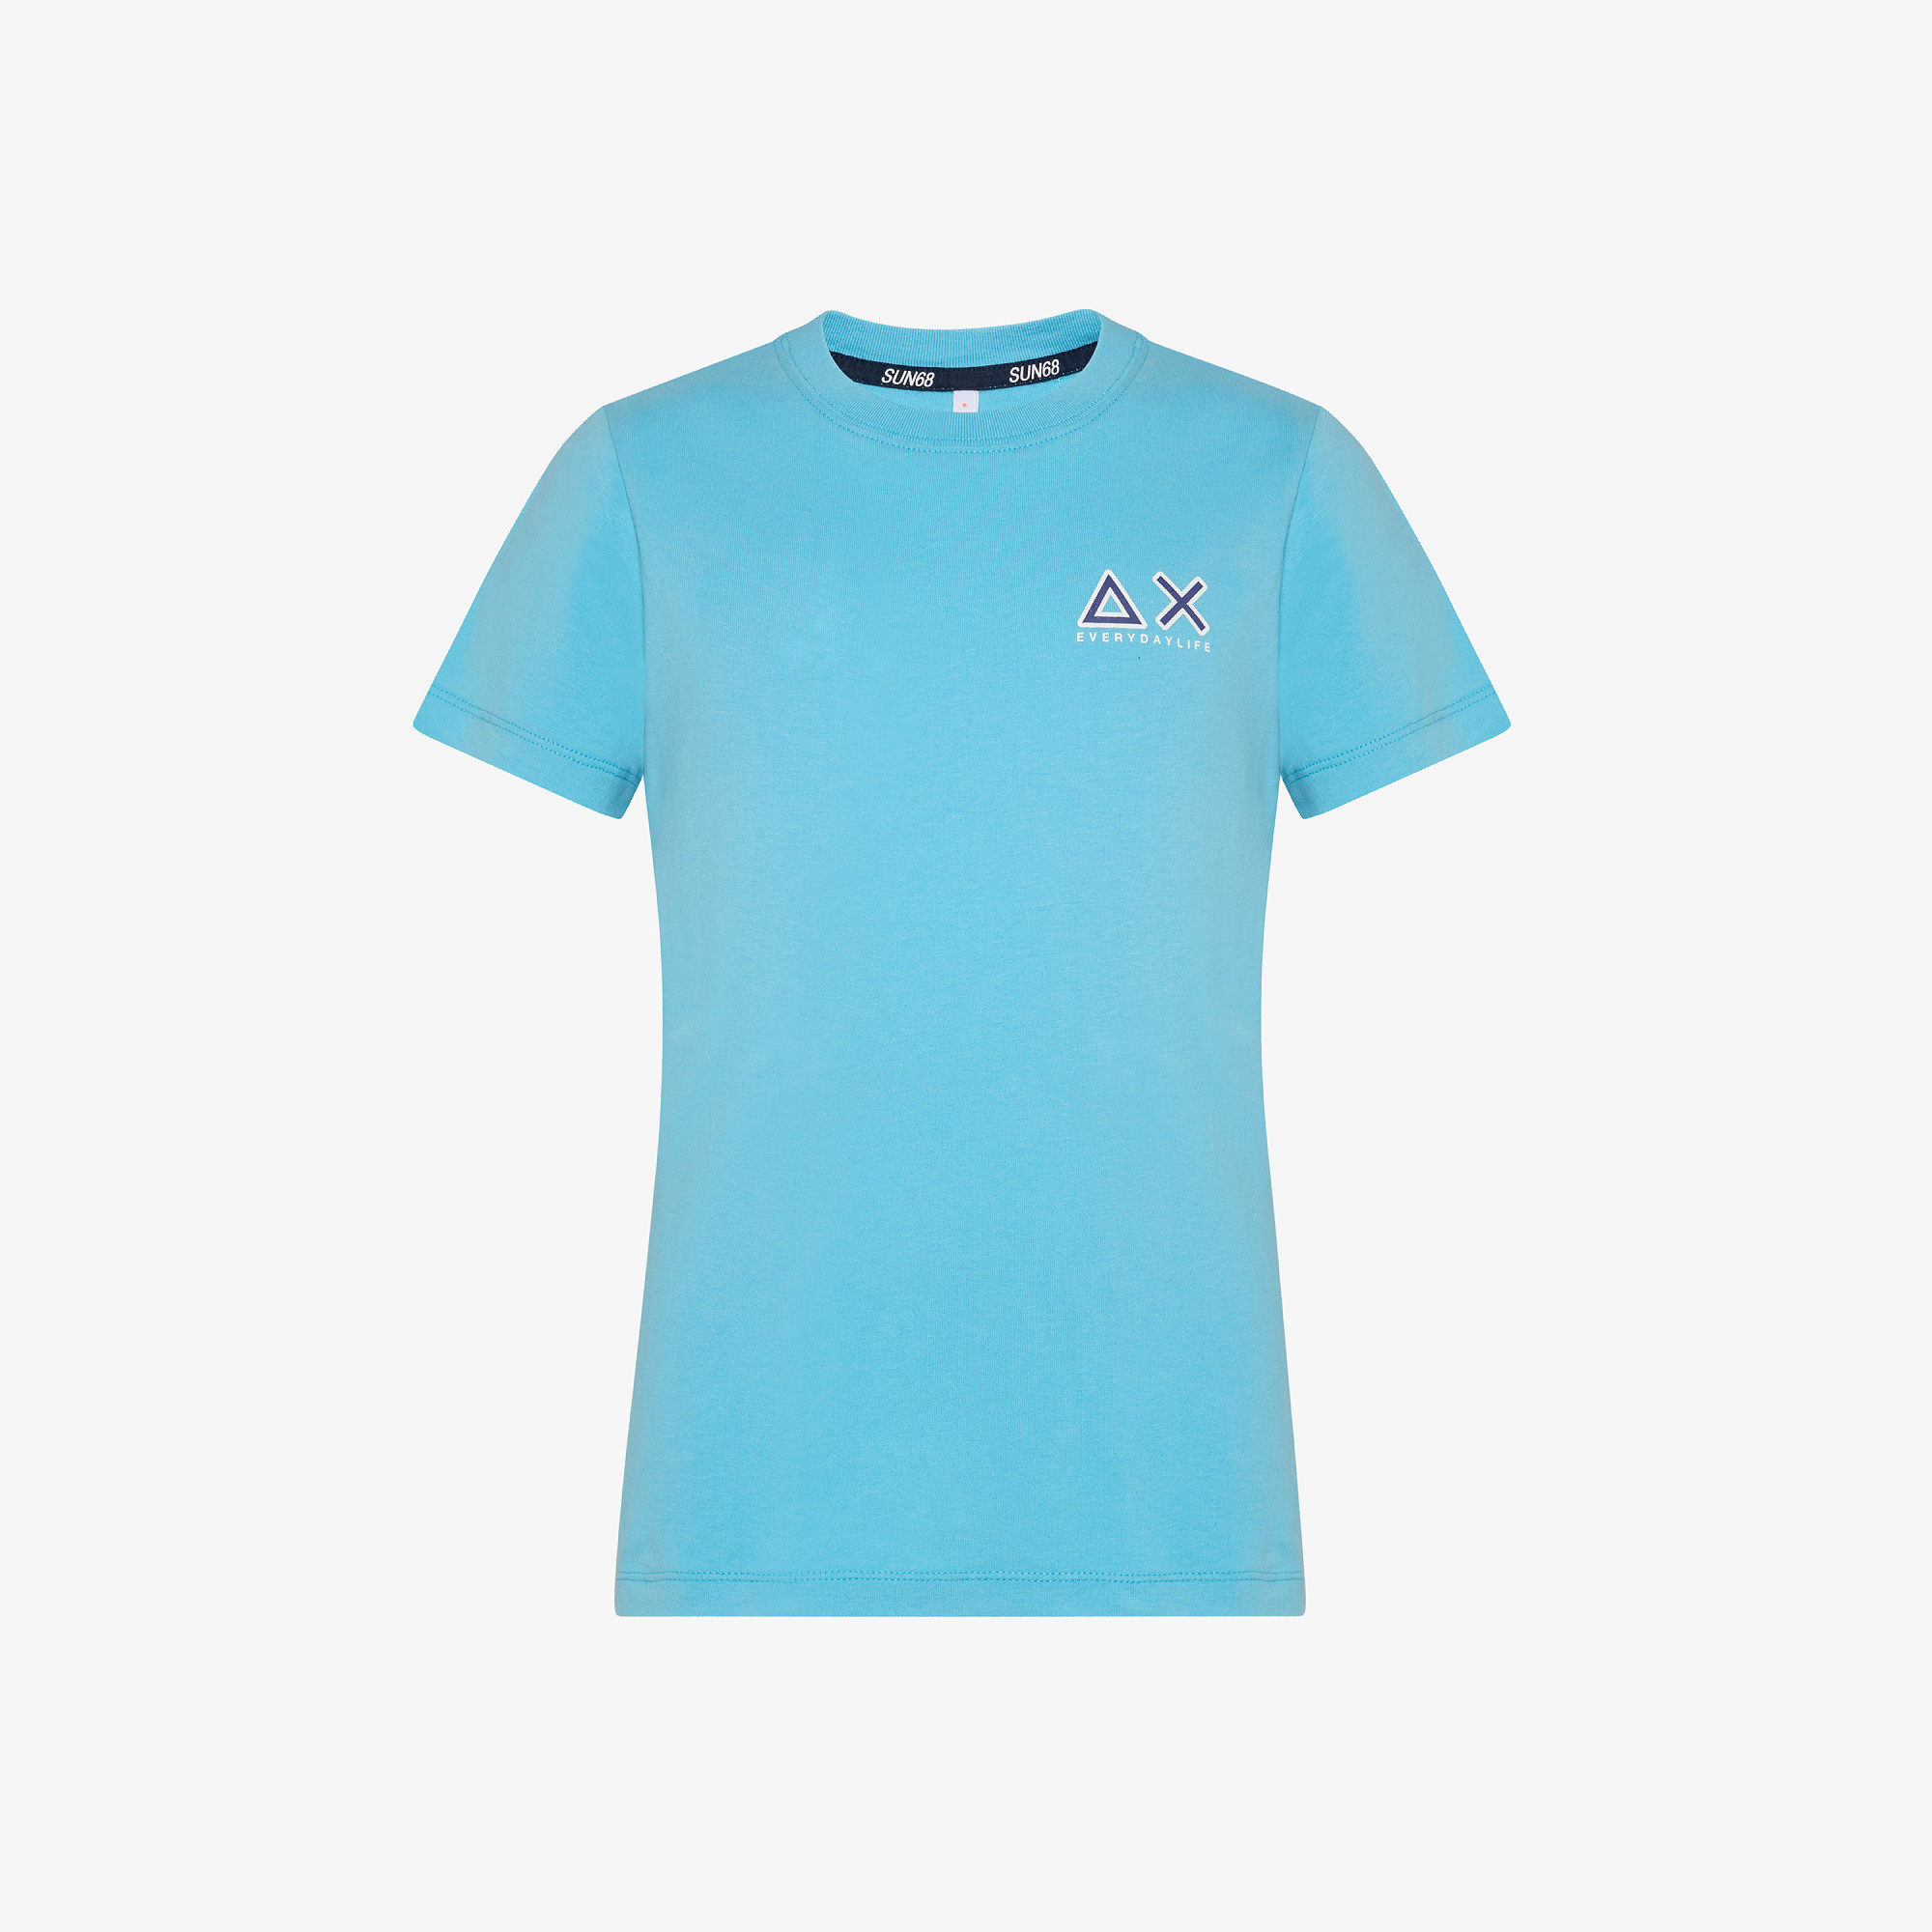 BOY'S ROUND T-SHIRT SMALL LOGO S/S TURQUOISE